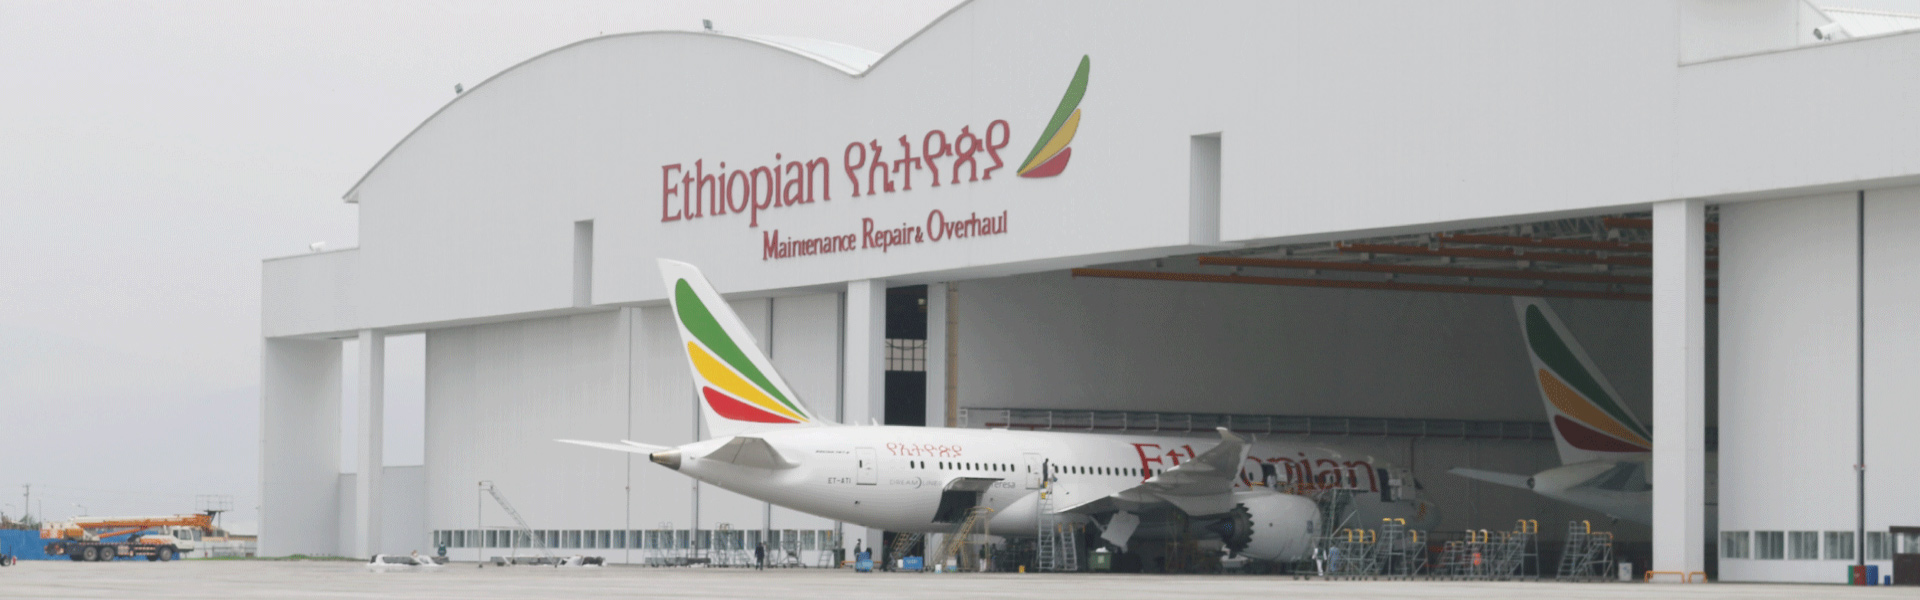 Ethiopian Airlines Engine Maintenance